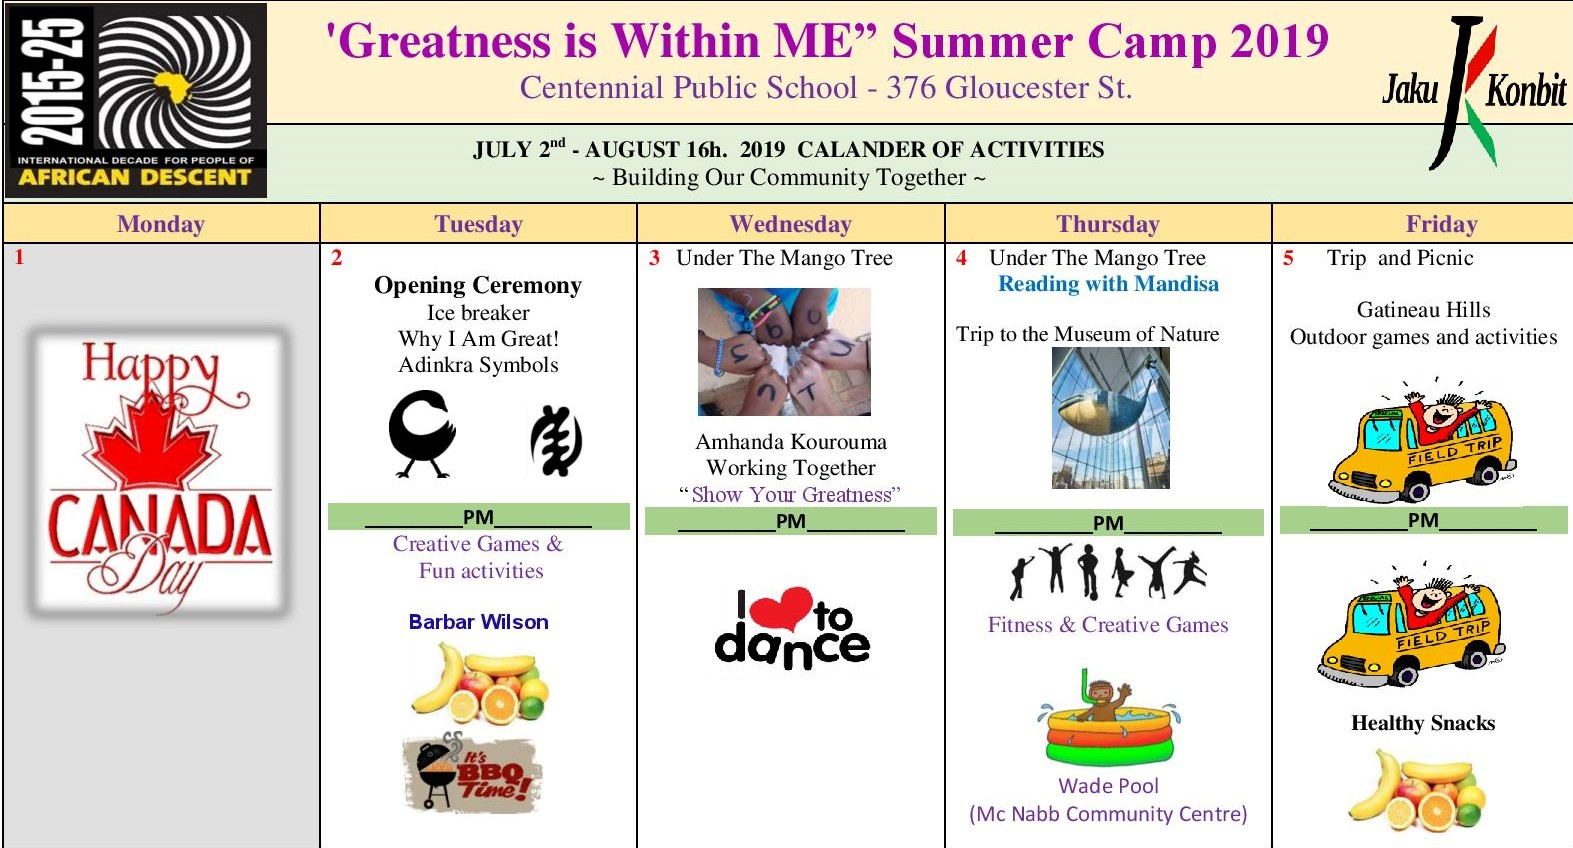 JakuJAKU KONBITS SUMMER CAMP CALENDAR 2019 June 31-page-001